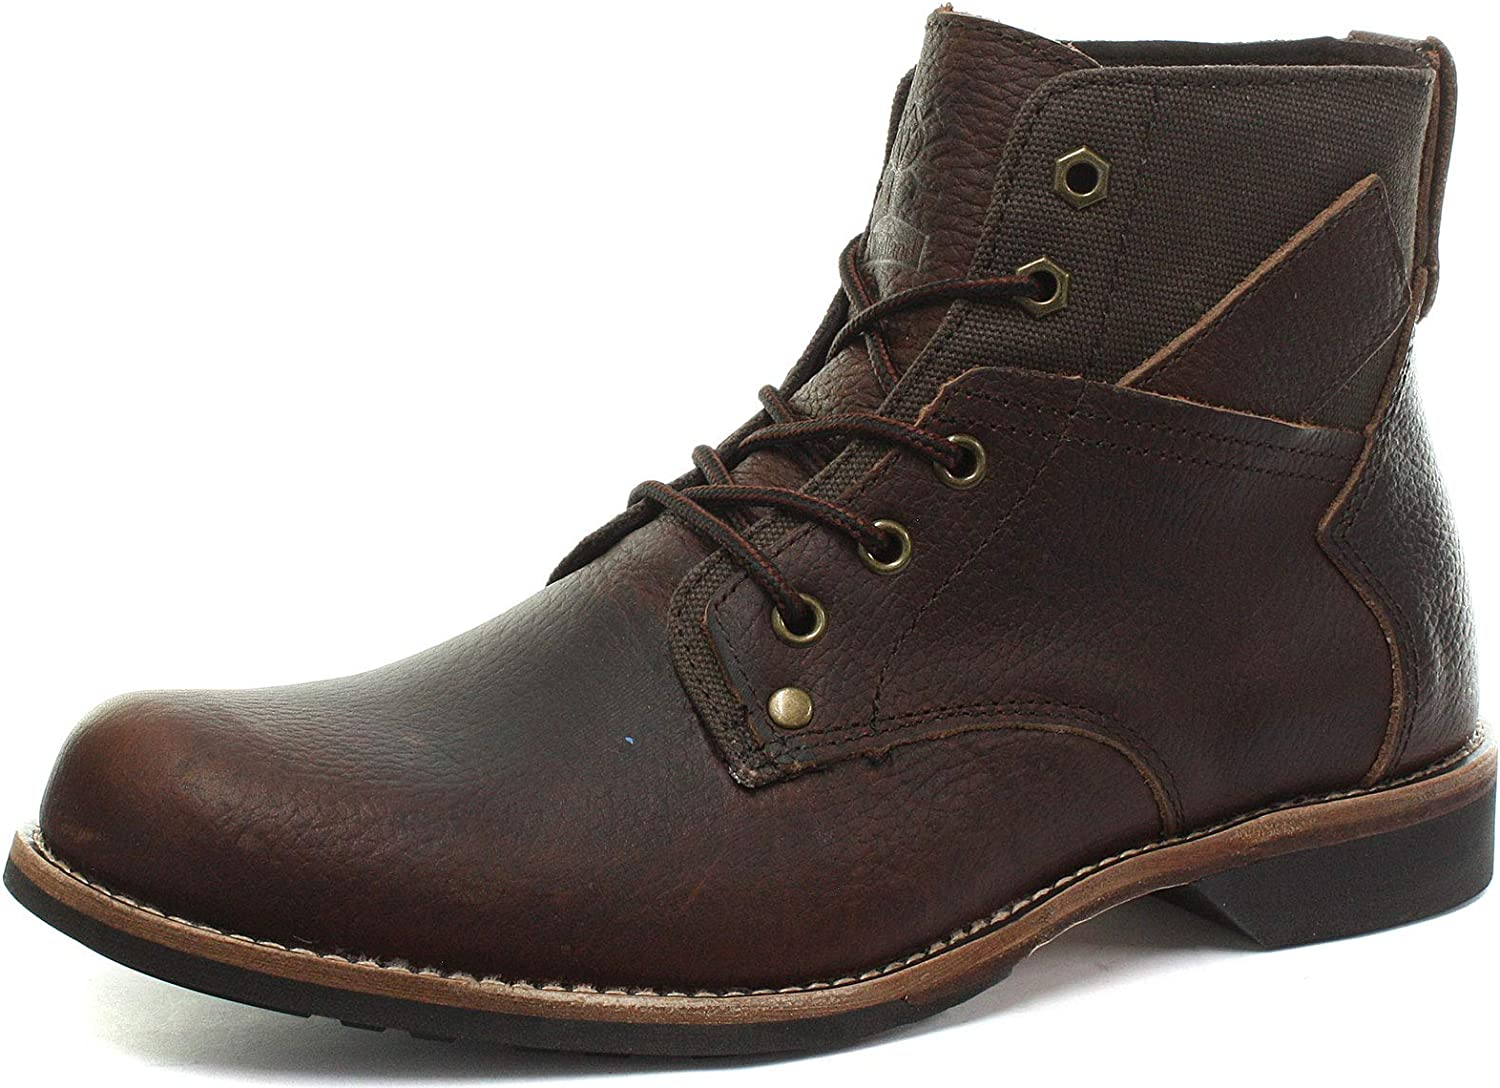 Woodland M9578 5 Eye Mens Ankle Boots